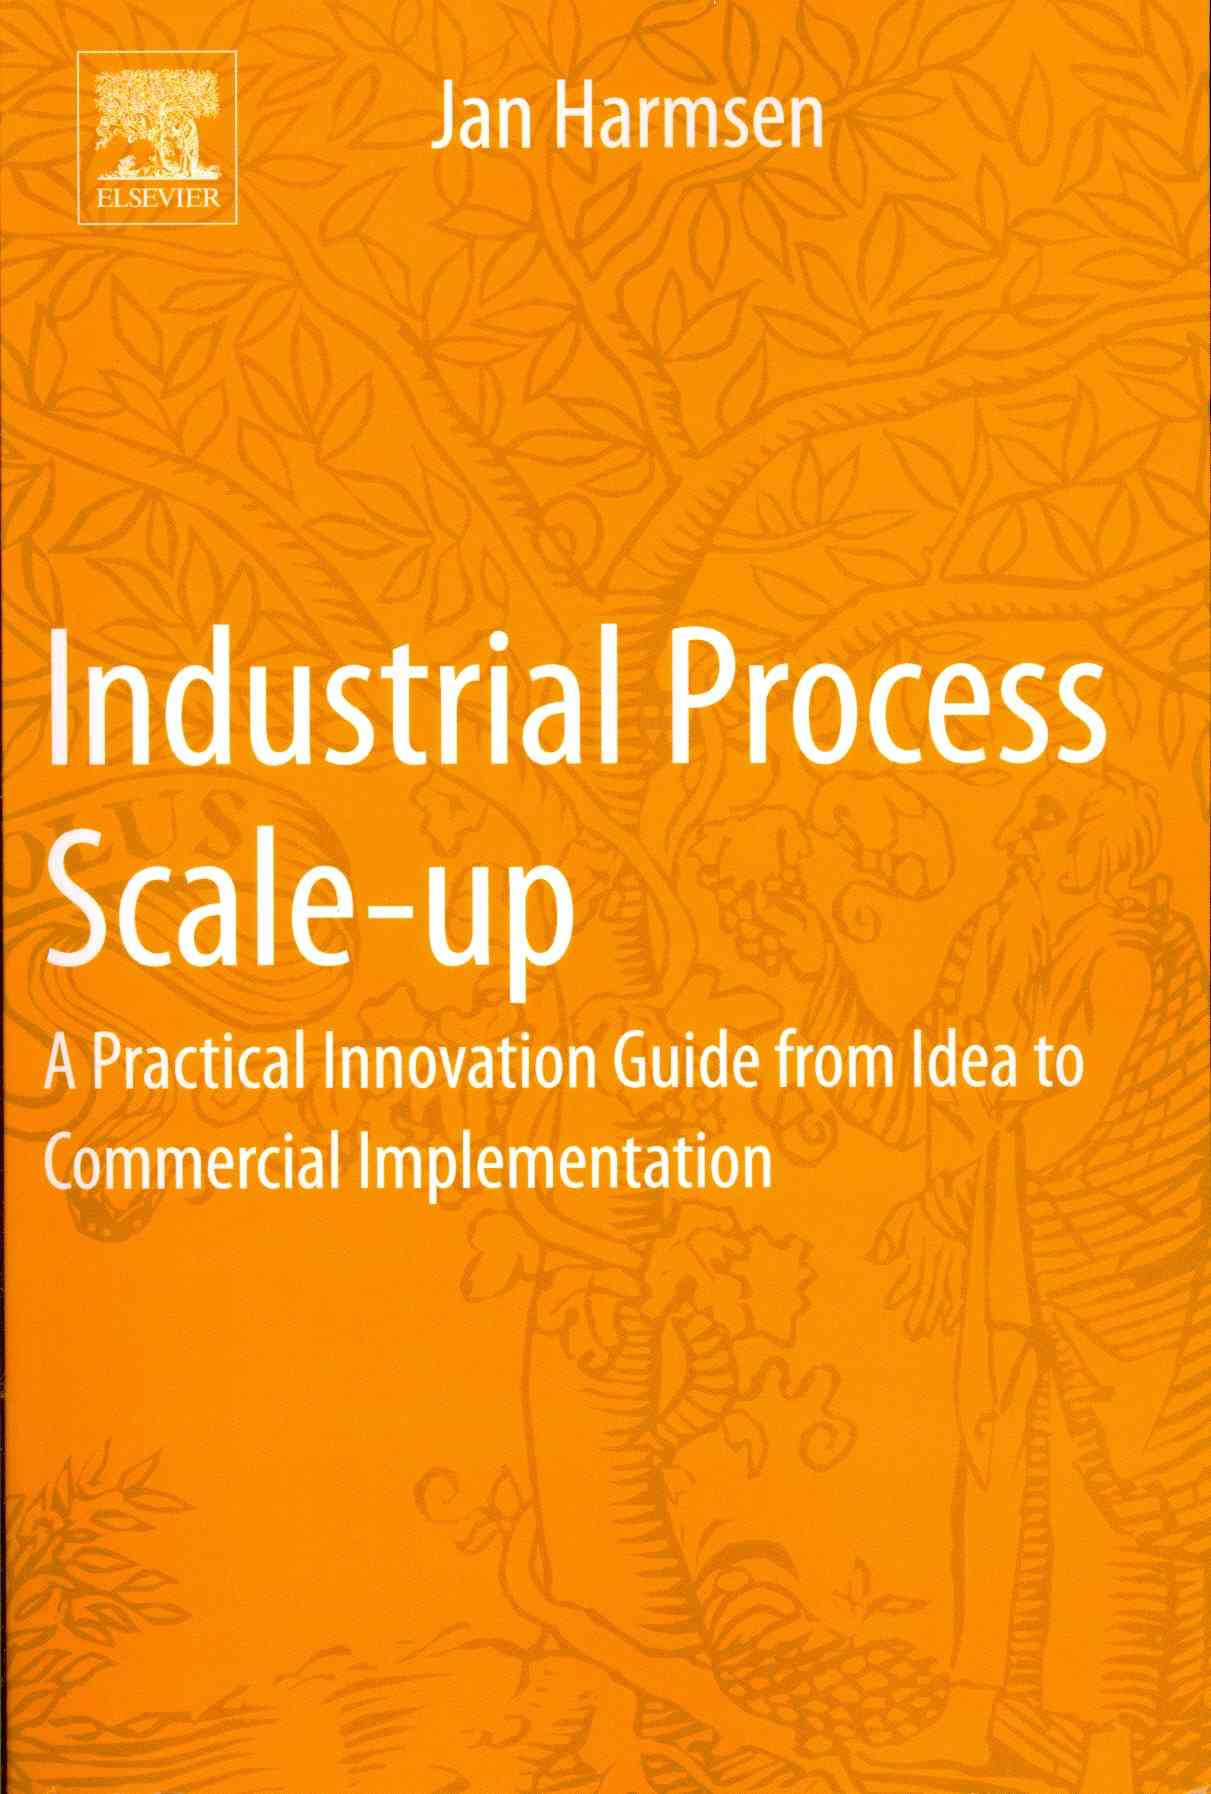 Industrial Process Scale-up By Harmsen, Jan